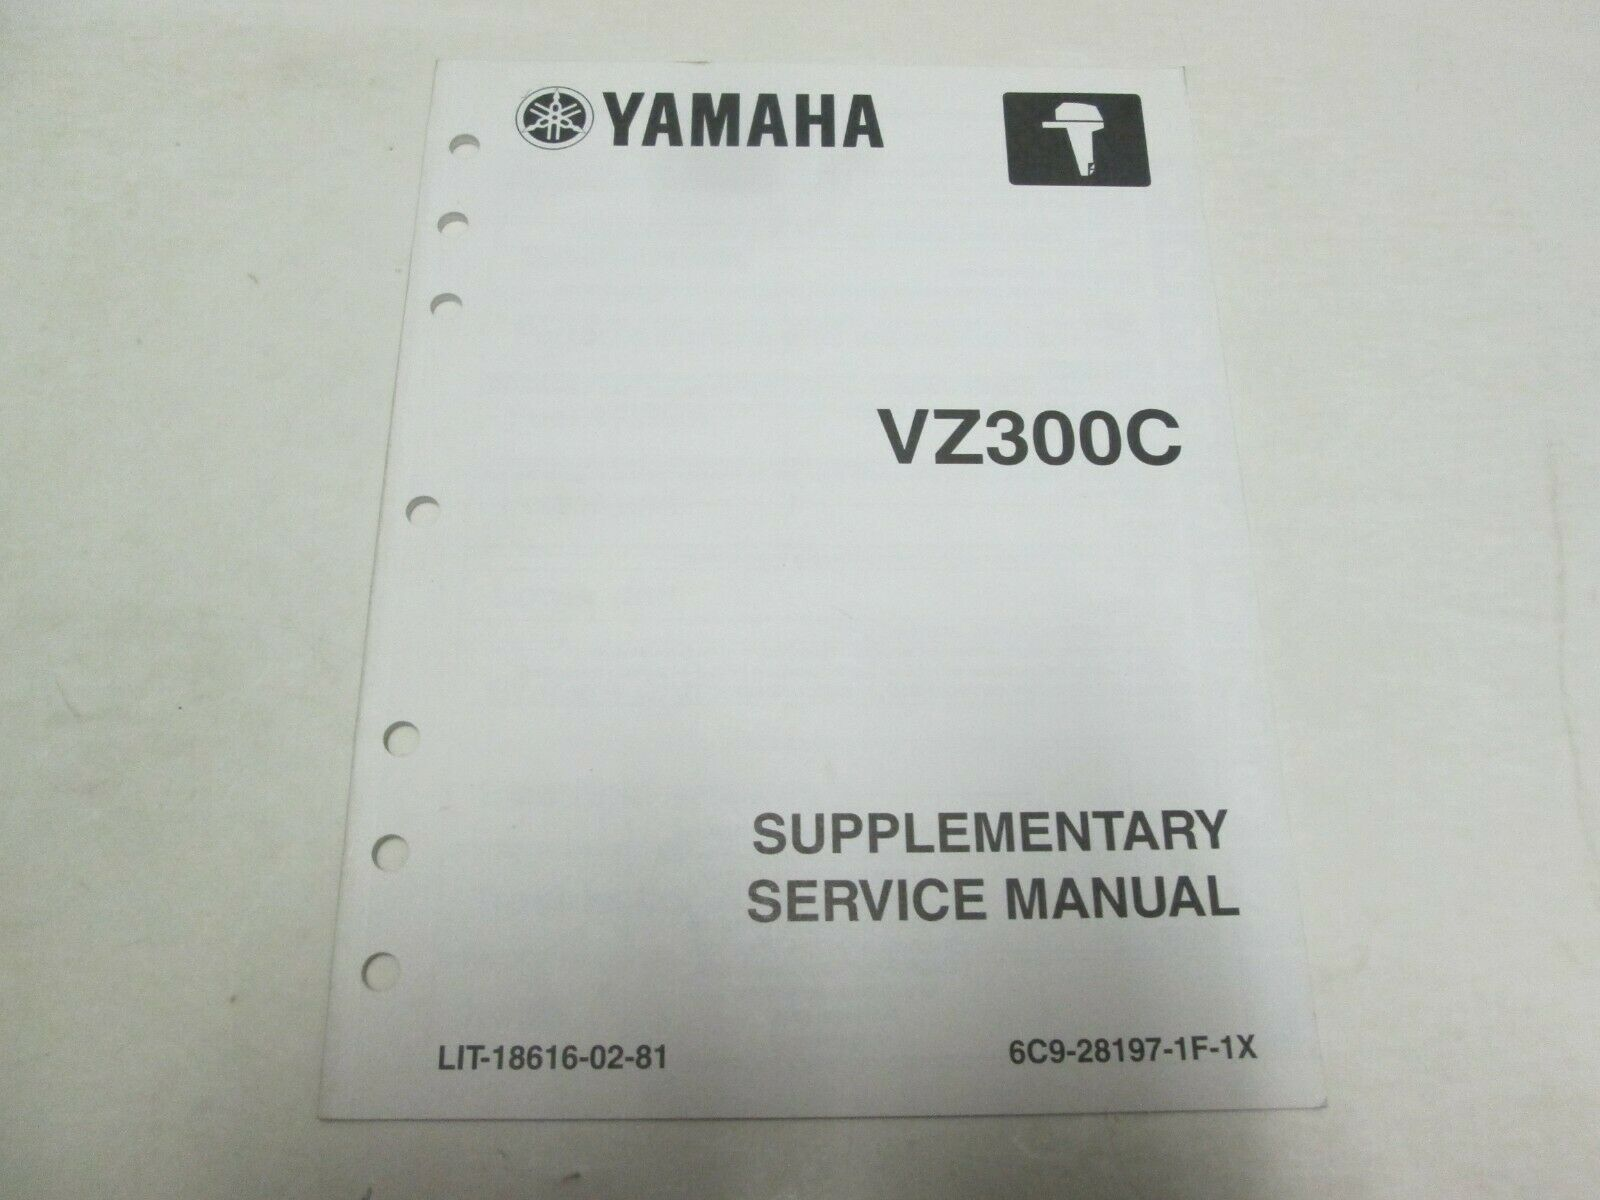 Primary image for 2004 Yamaha VZ300C Supplementare Servizio Manuale LIT-18616-02-81 OEM Barca